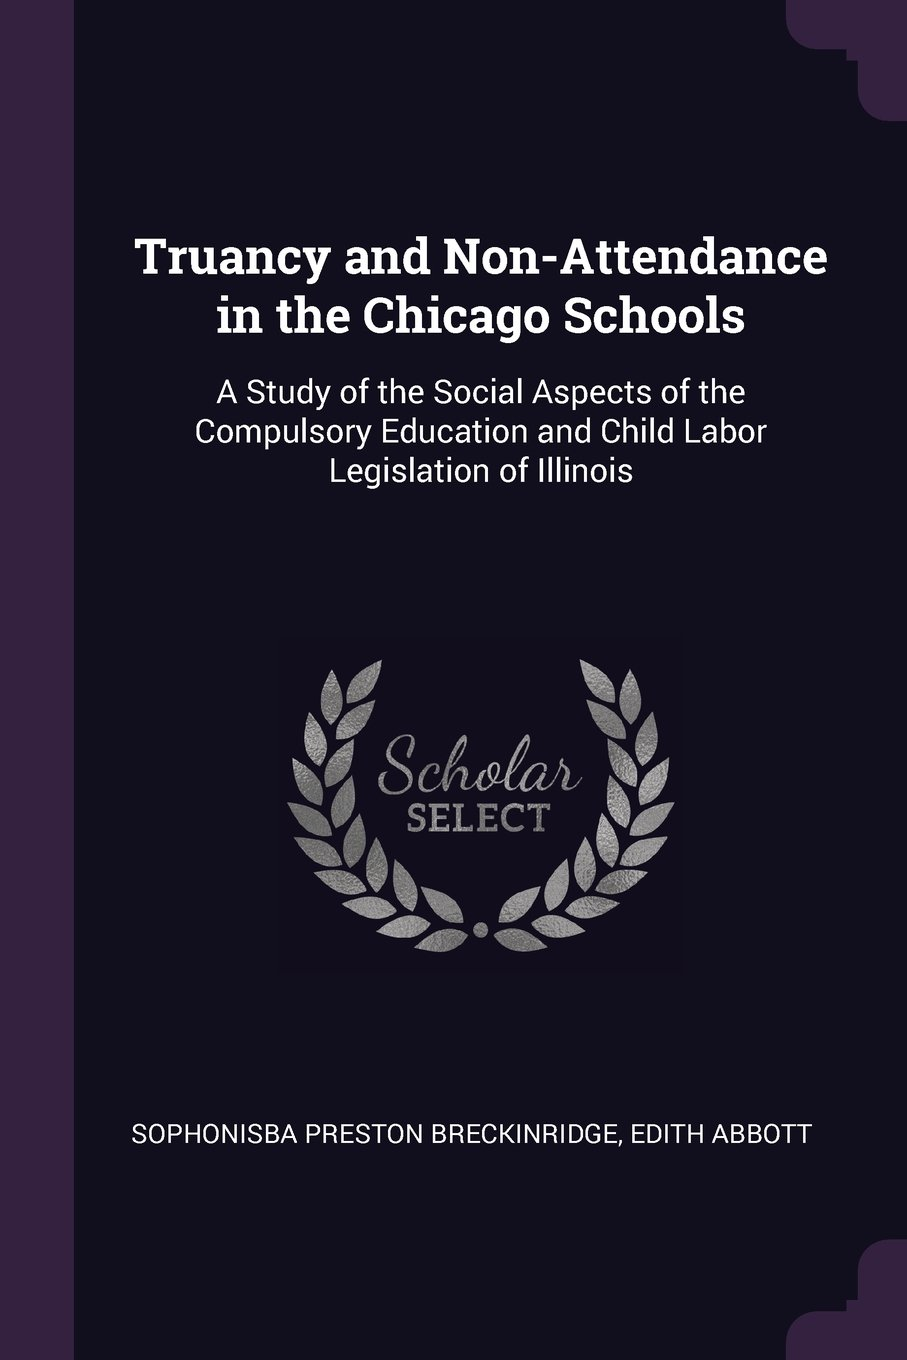 Download Truancy and Non-Attendance in the Chicago Schools: A Study of the Social Aspects of the Compulsory Education and Child Labor Legislation of Illinois pdf